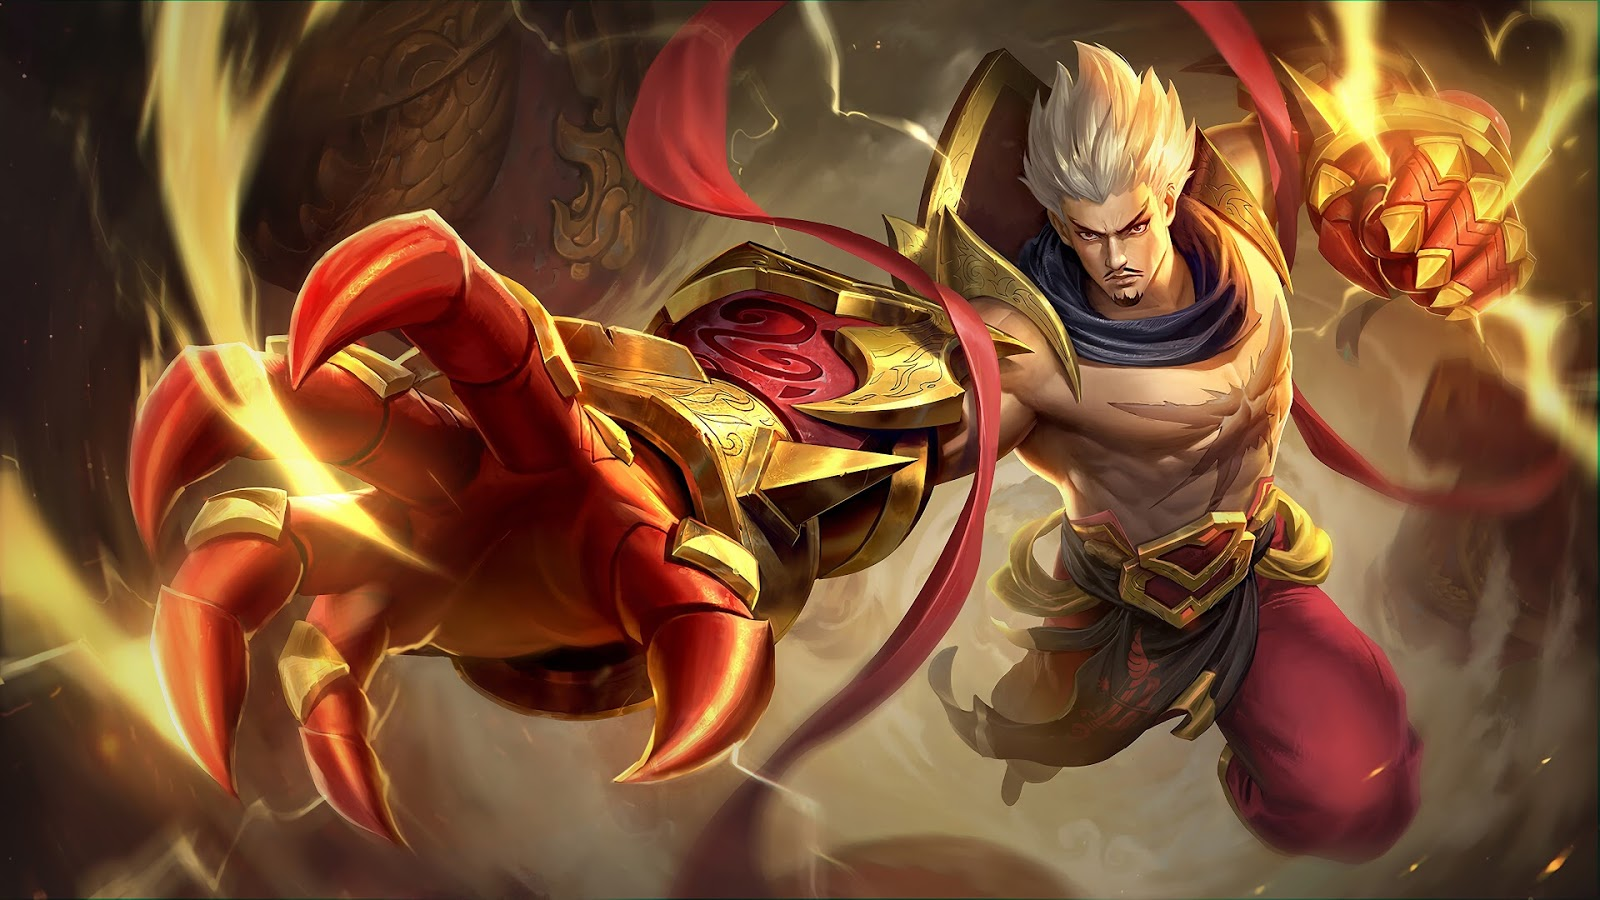 Wallpaper Gatotkaca Spark Skin Mobile Legends HD for PC